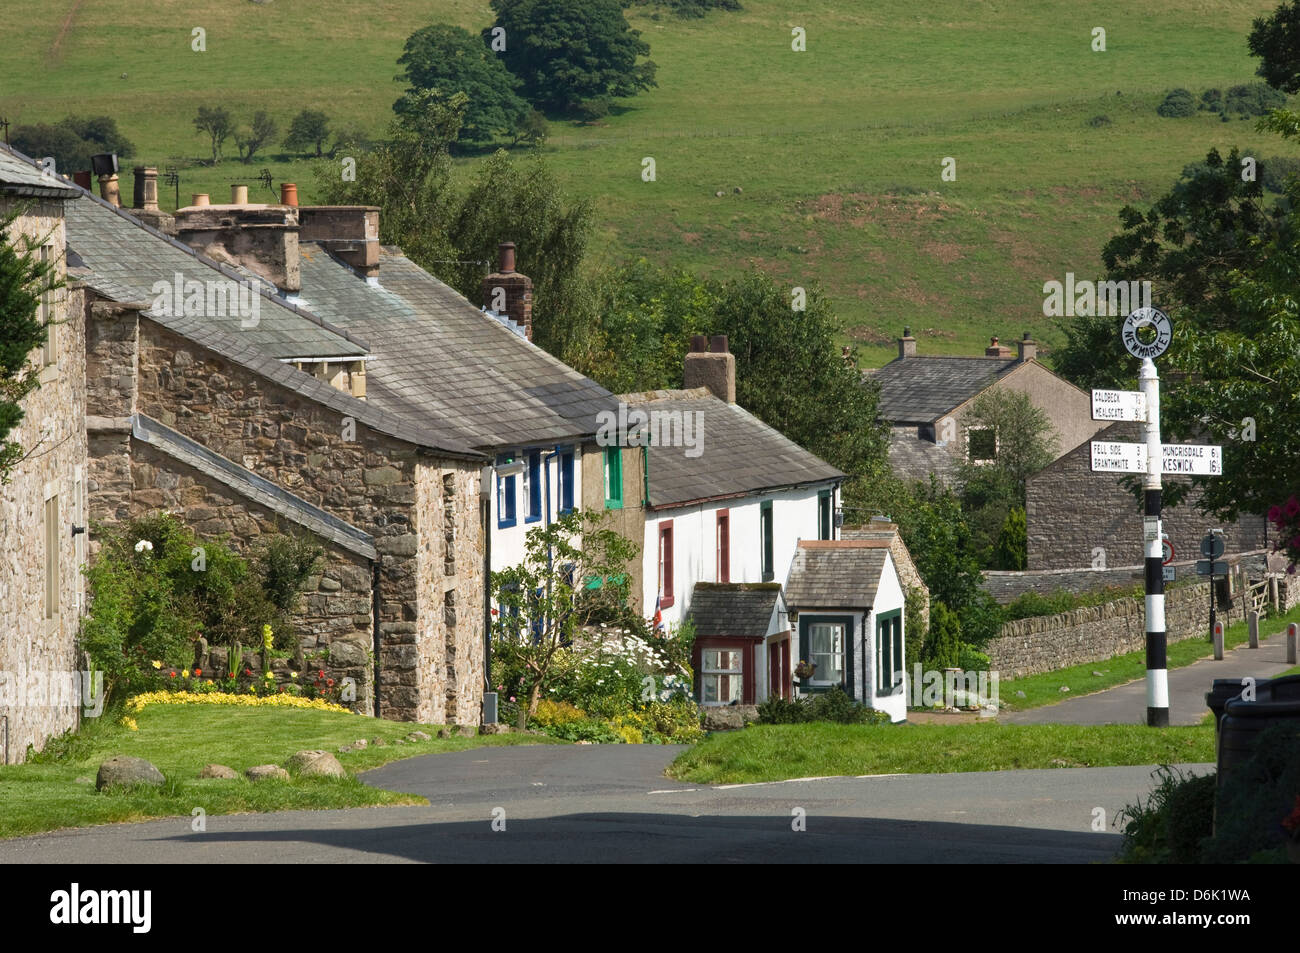 Cottages in the centre of Hesket Newmarket, John Peel Country, Cumbria, England, United Kingdom, Europe - Stock Image